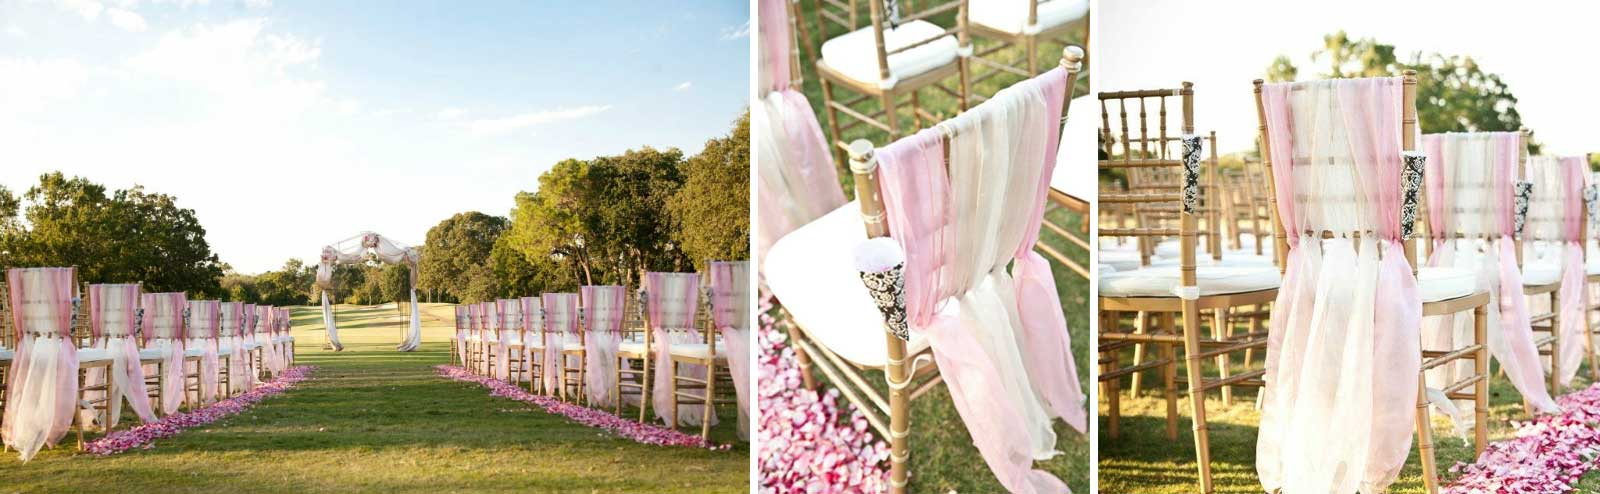 Wedding Rentals in East Texas